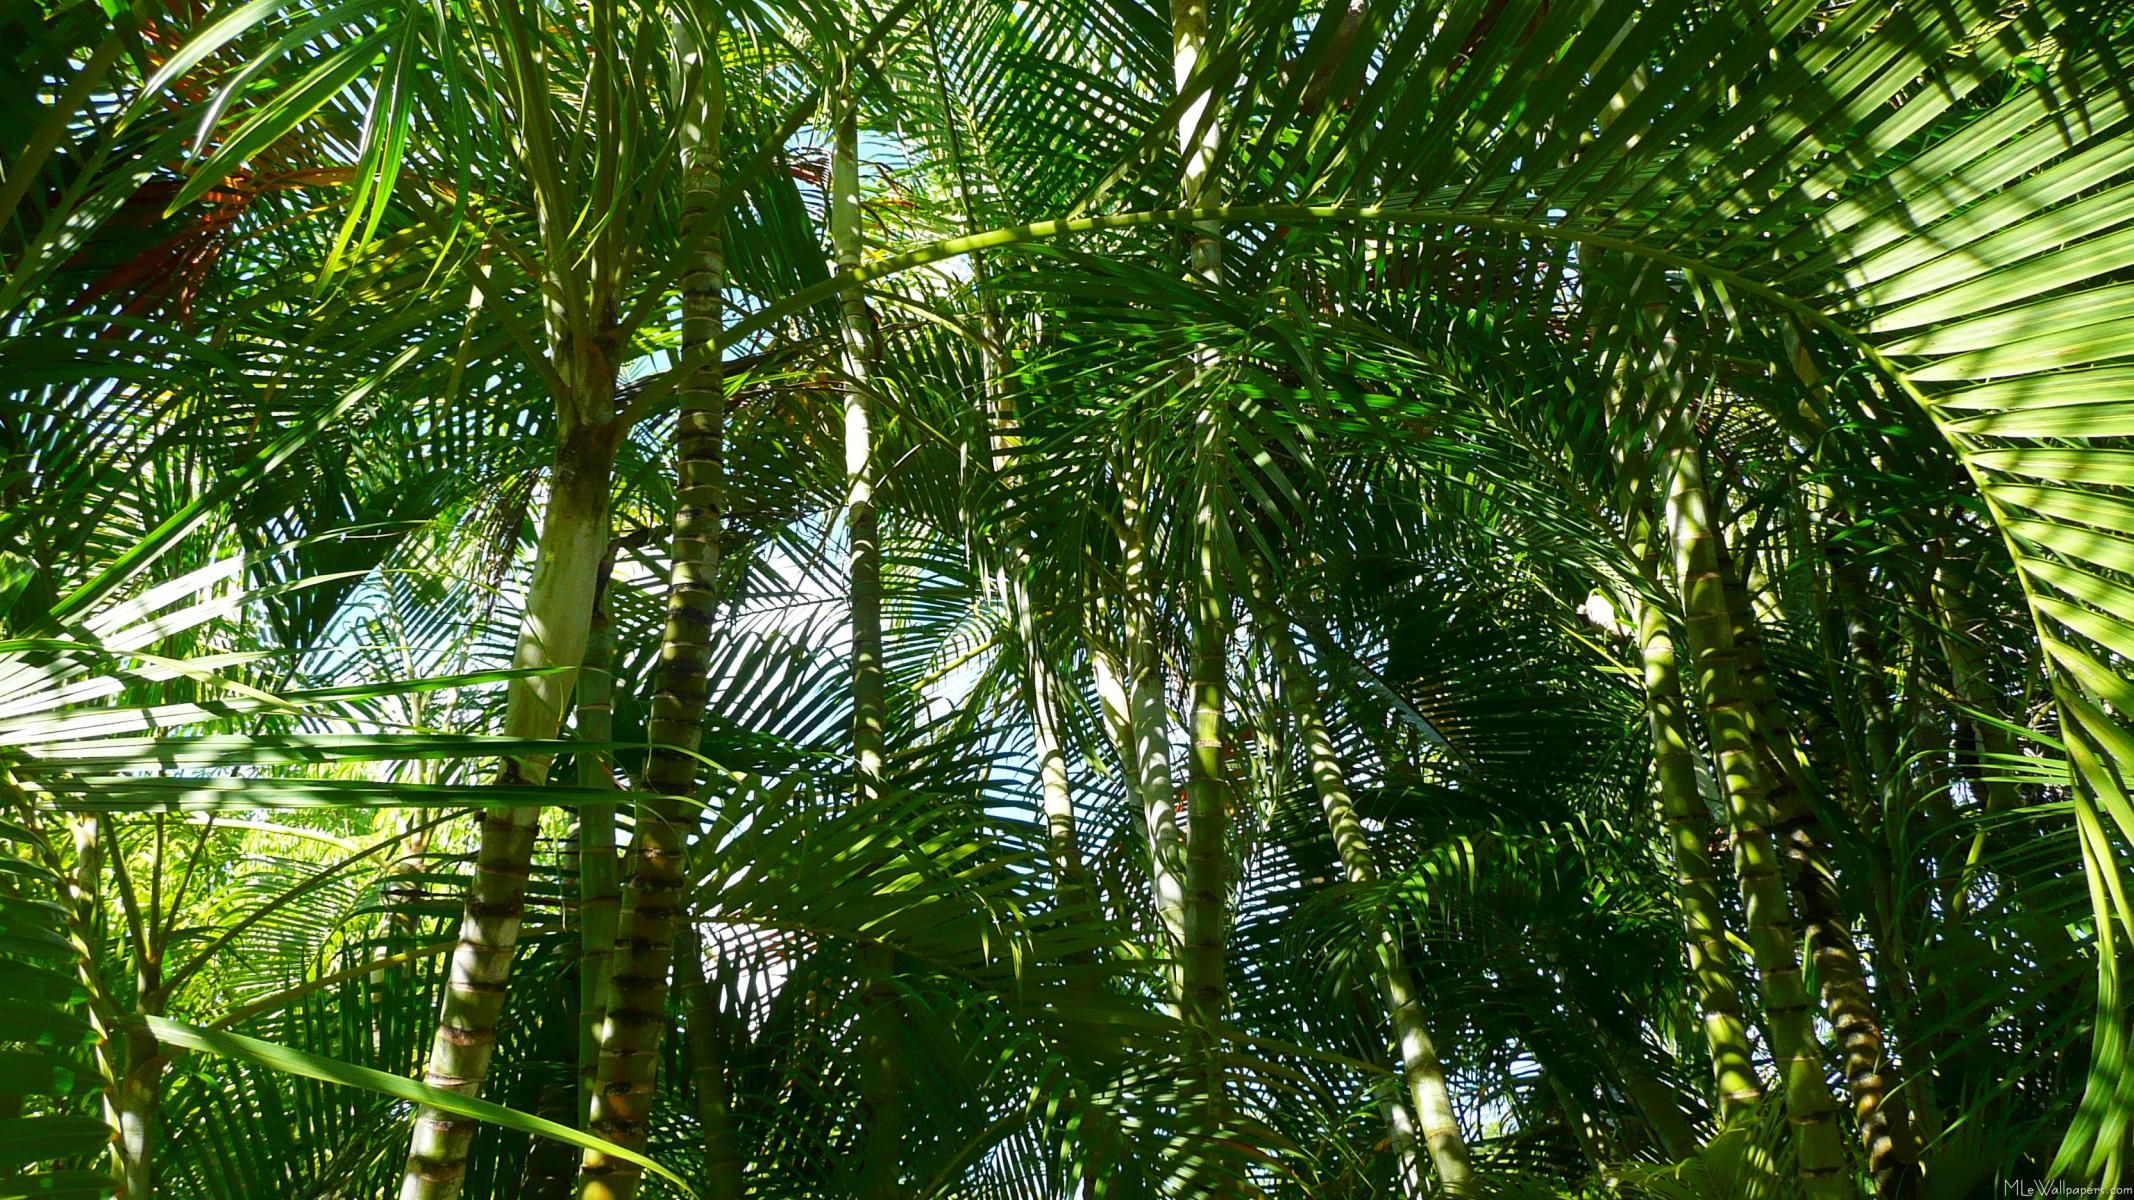 There Are Several Wallpapers Of A Single Lovely Palm Tree On This Website Heres Whole Forest Young Trees In Wallpaper